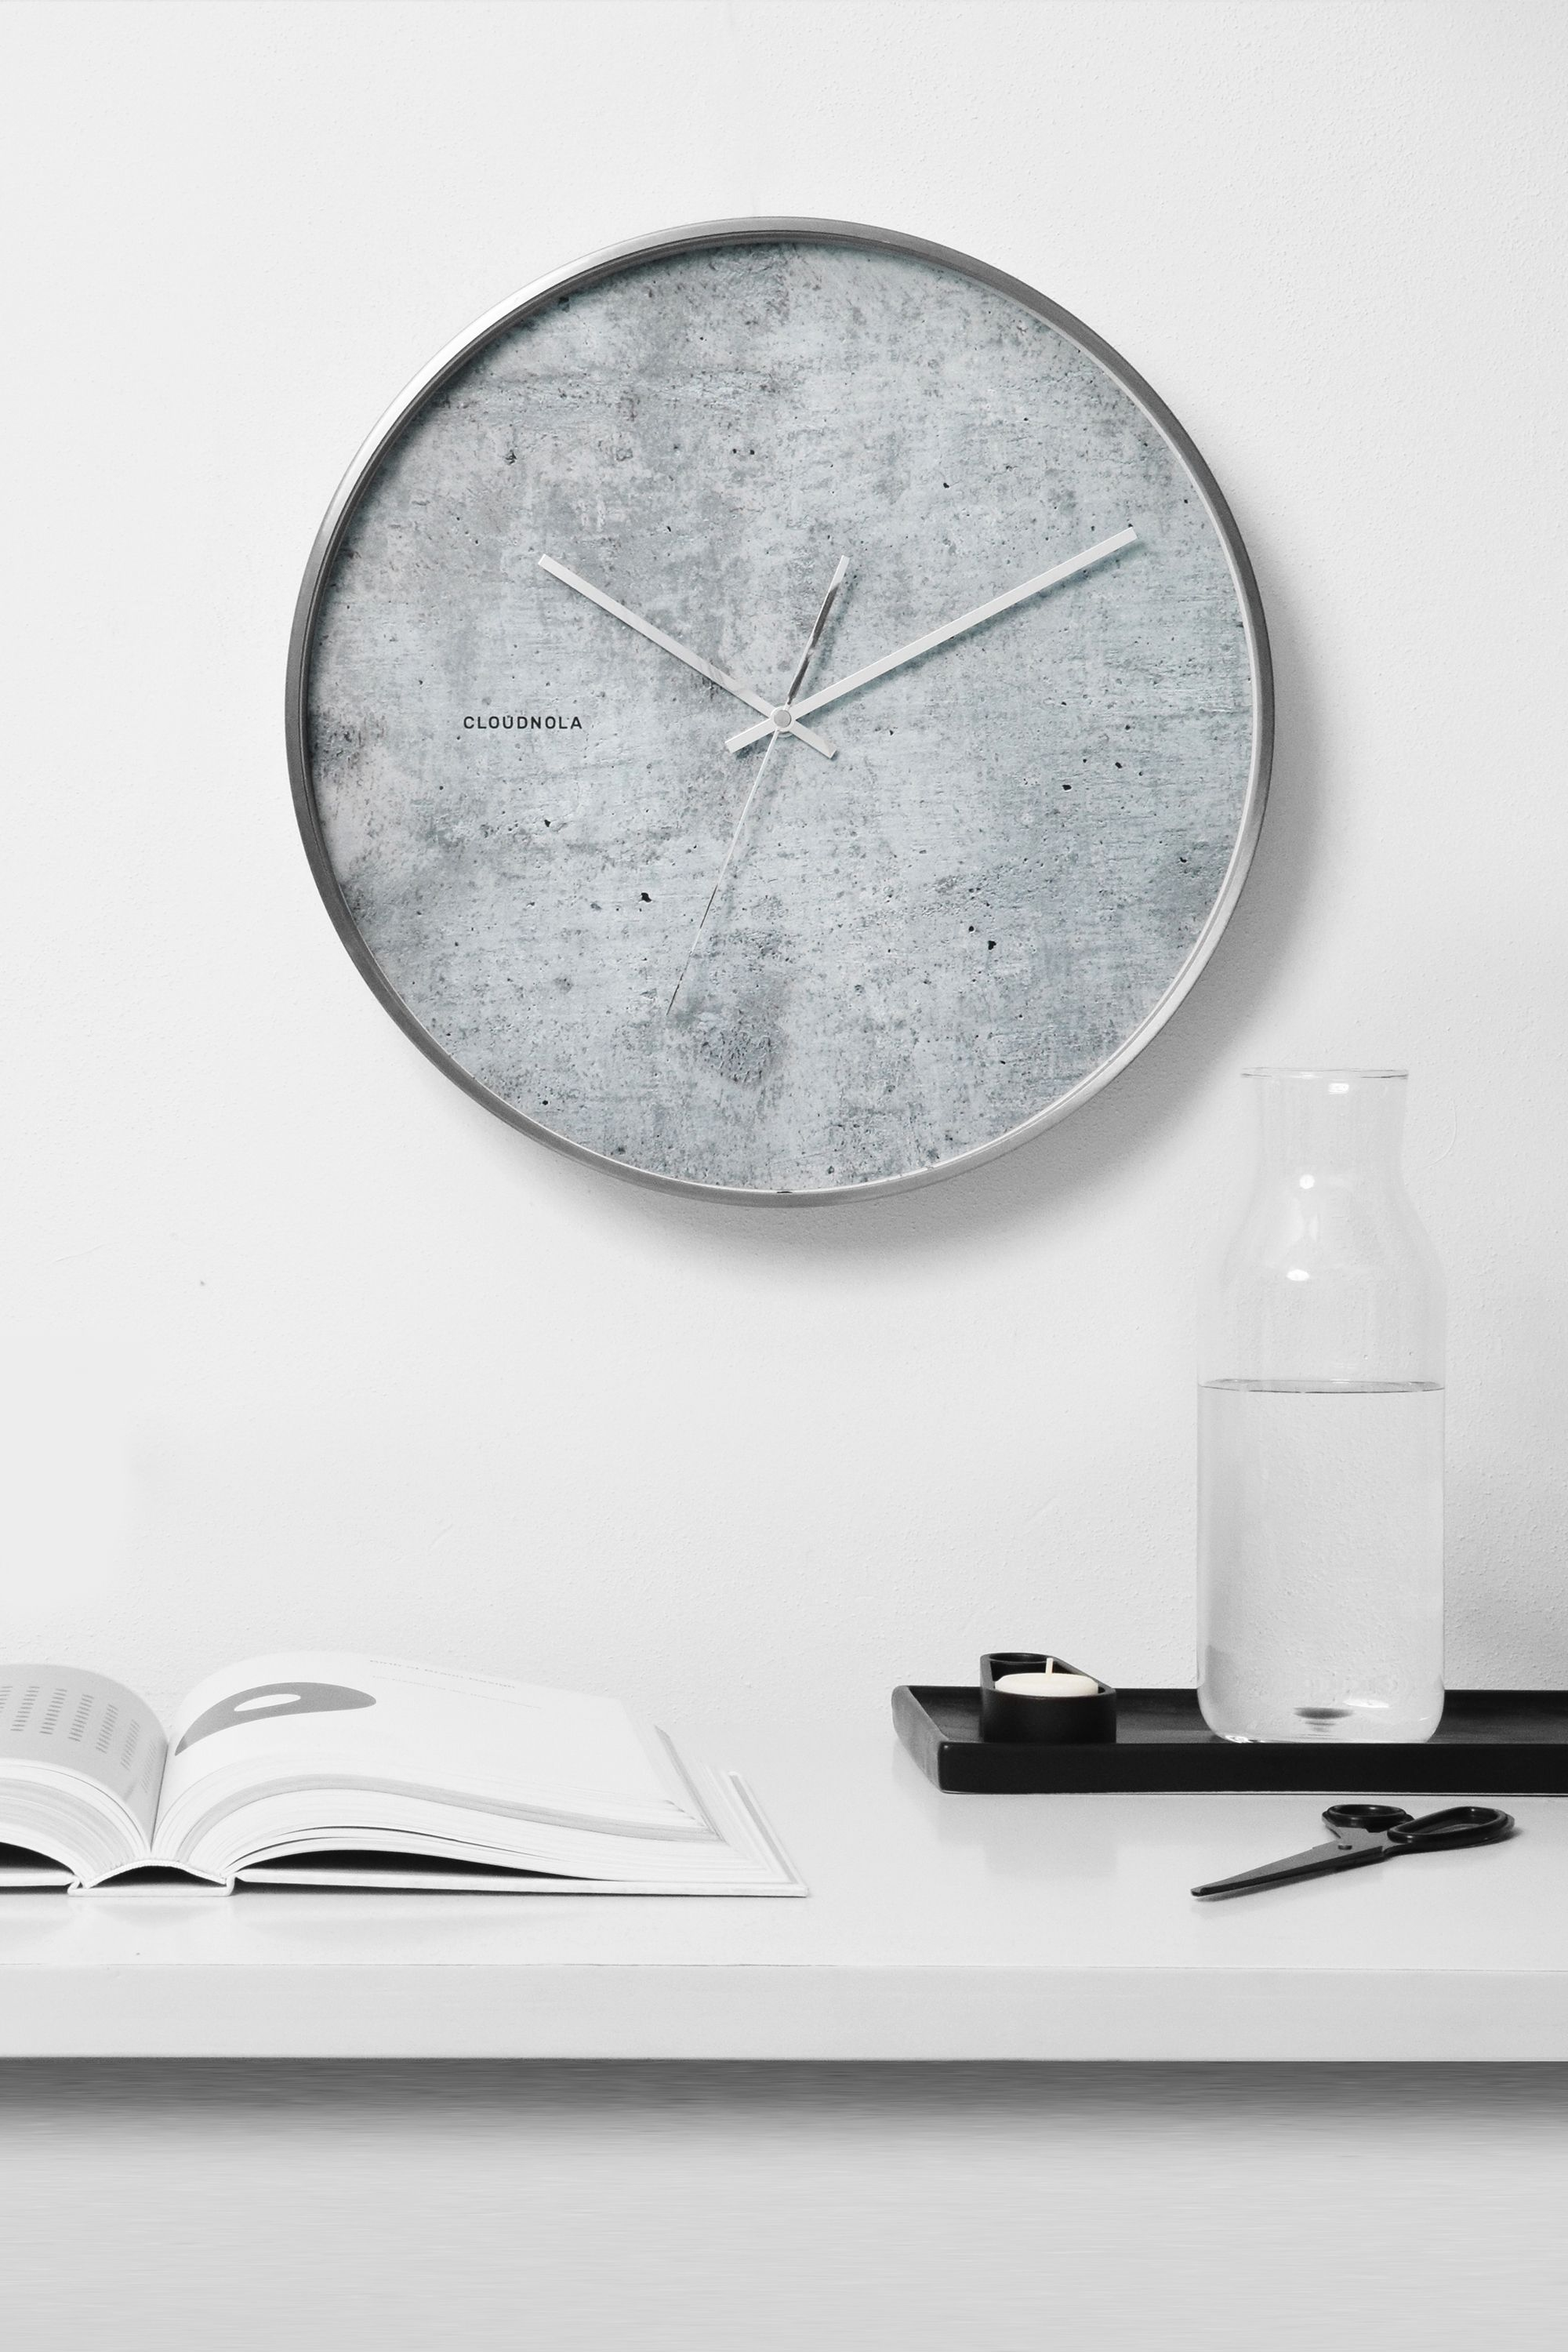 Structure cement clock by cloudnola from cloudnola simple structure cement clock by cloudnola from cloudnola amipublicfo Choice Image